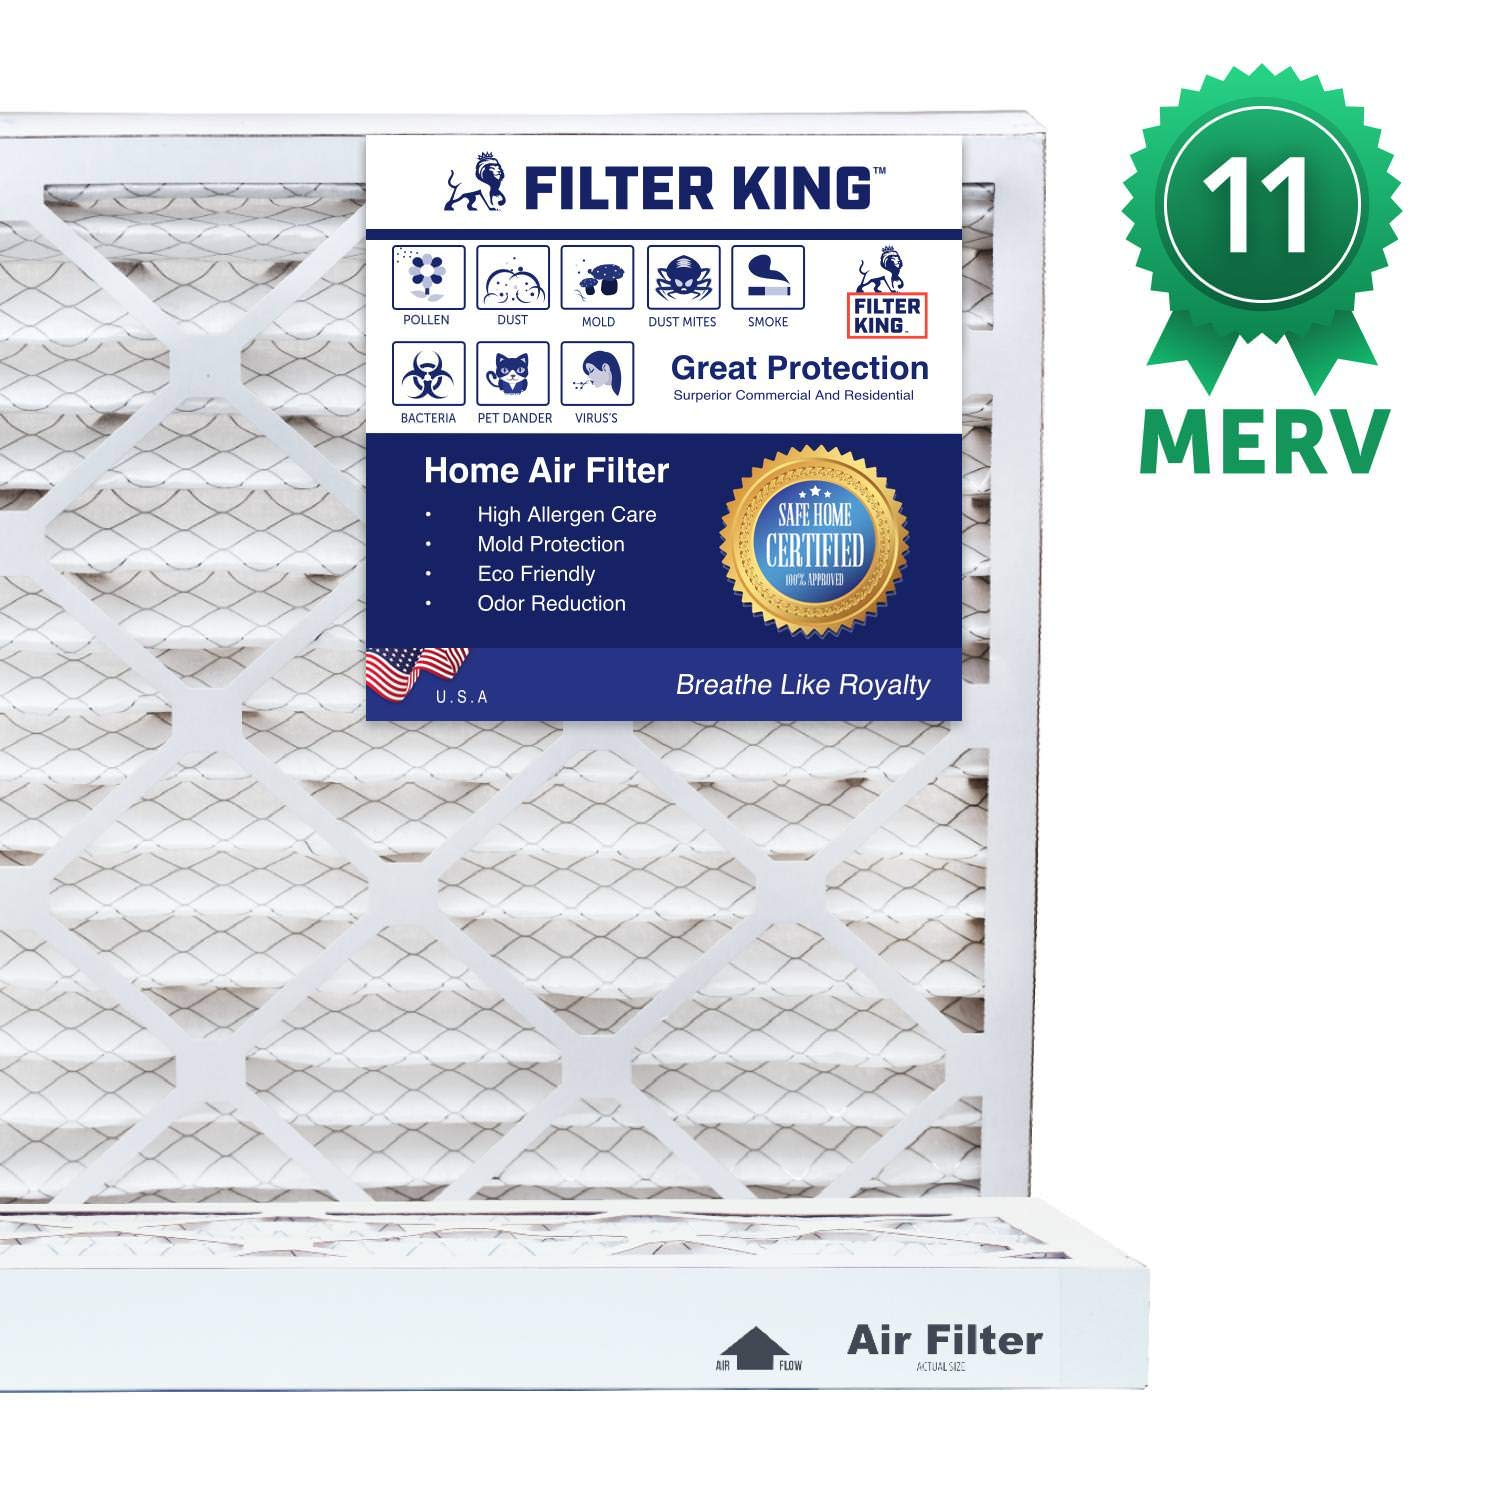 Filter King 12x24x1 Air Filters Protection Against Mold and Pollen MERV 11 HVAC Pleated AC Furnace Filters Allergen Reduction Increases Air Quality 12 Pack Actual Size 11.5x23.5x1